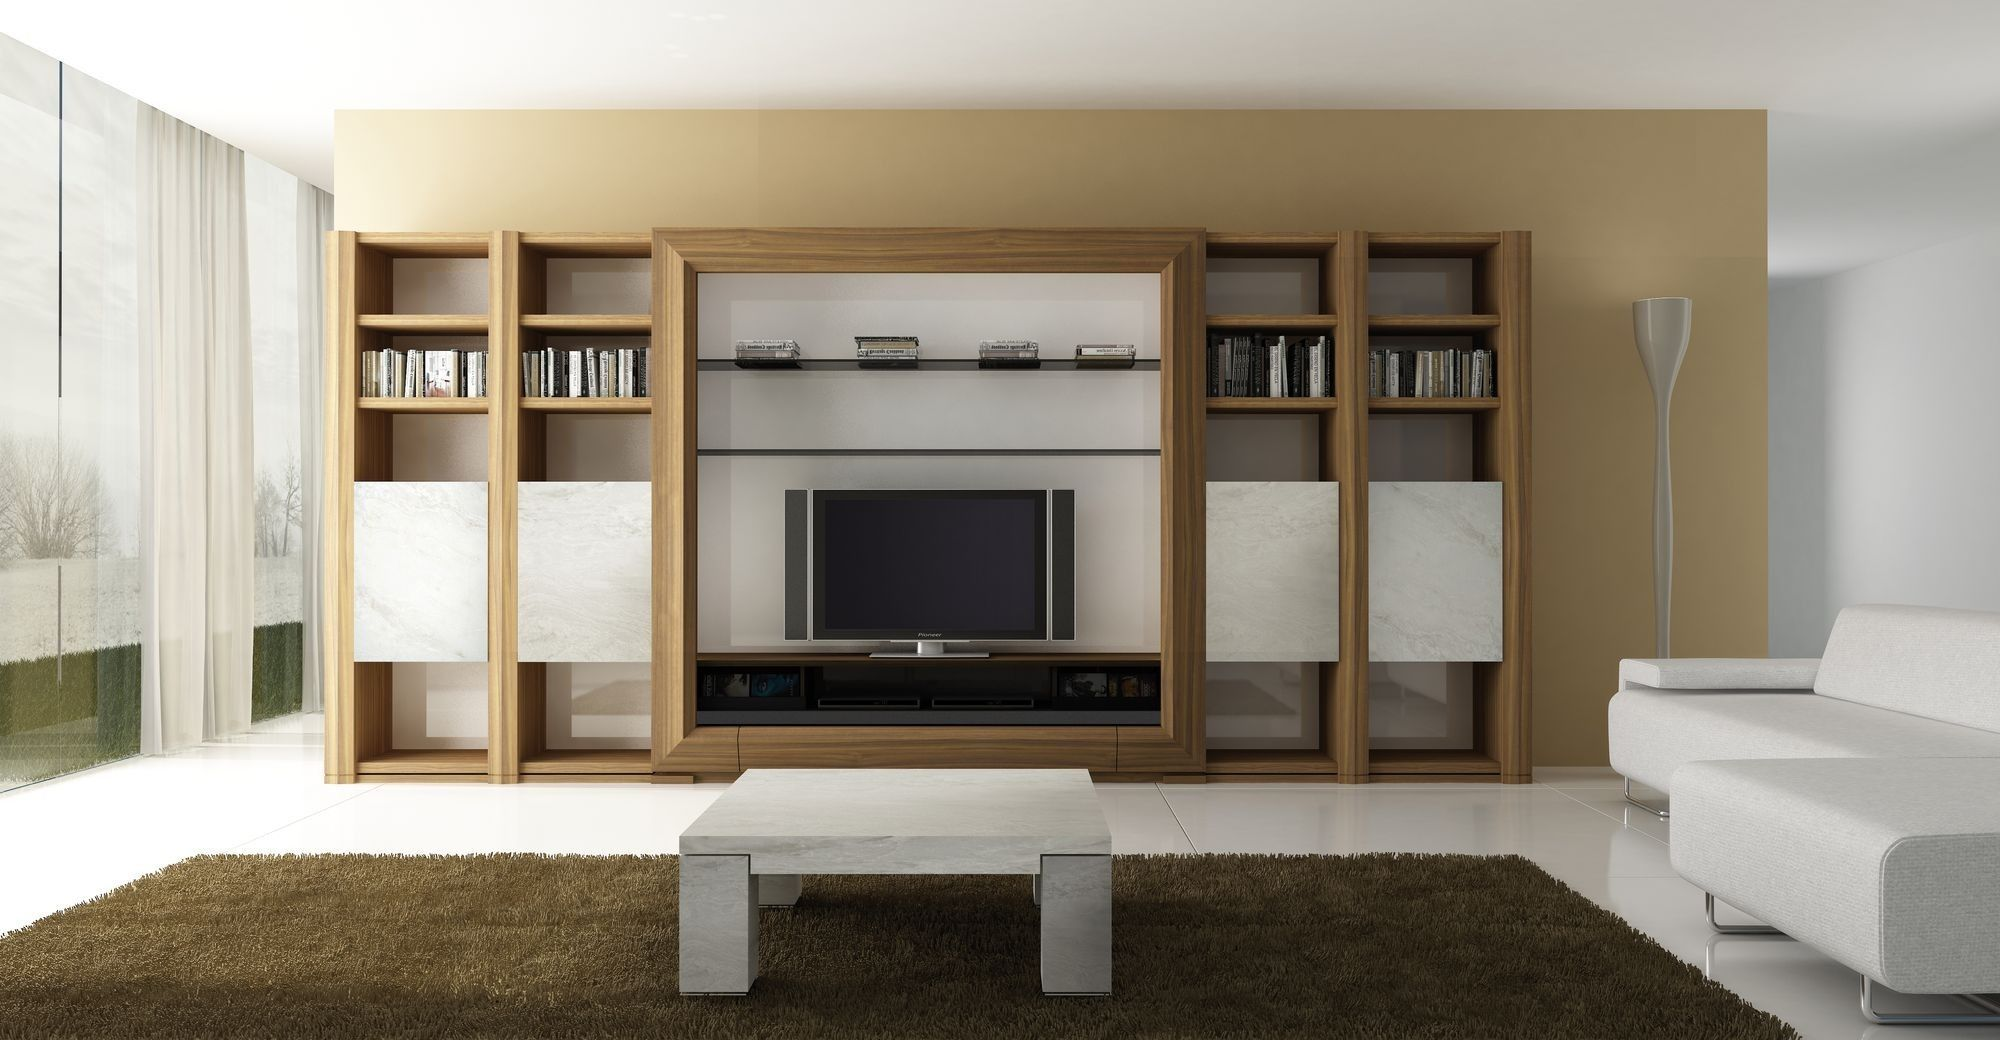 Large Open Plan Wooden Tv Wall Units With Centered Room And Modern Bookshelves System Storage